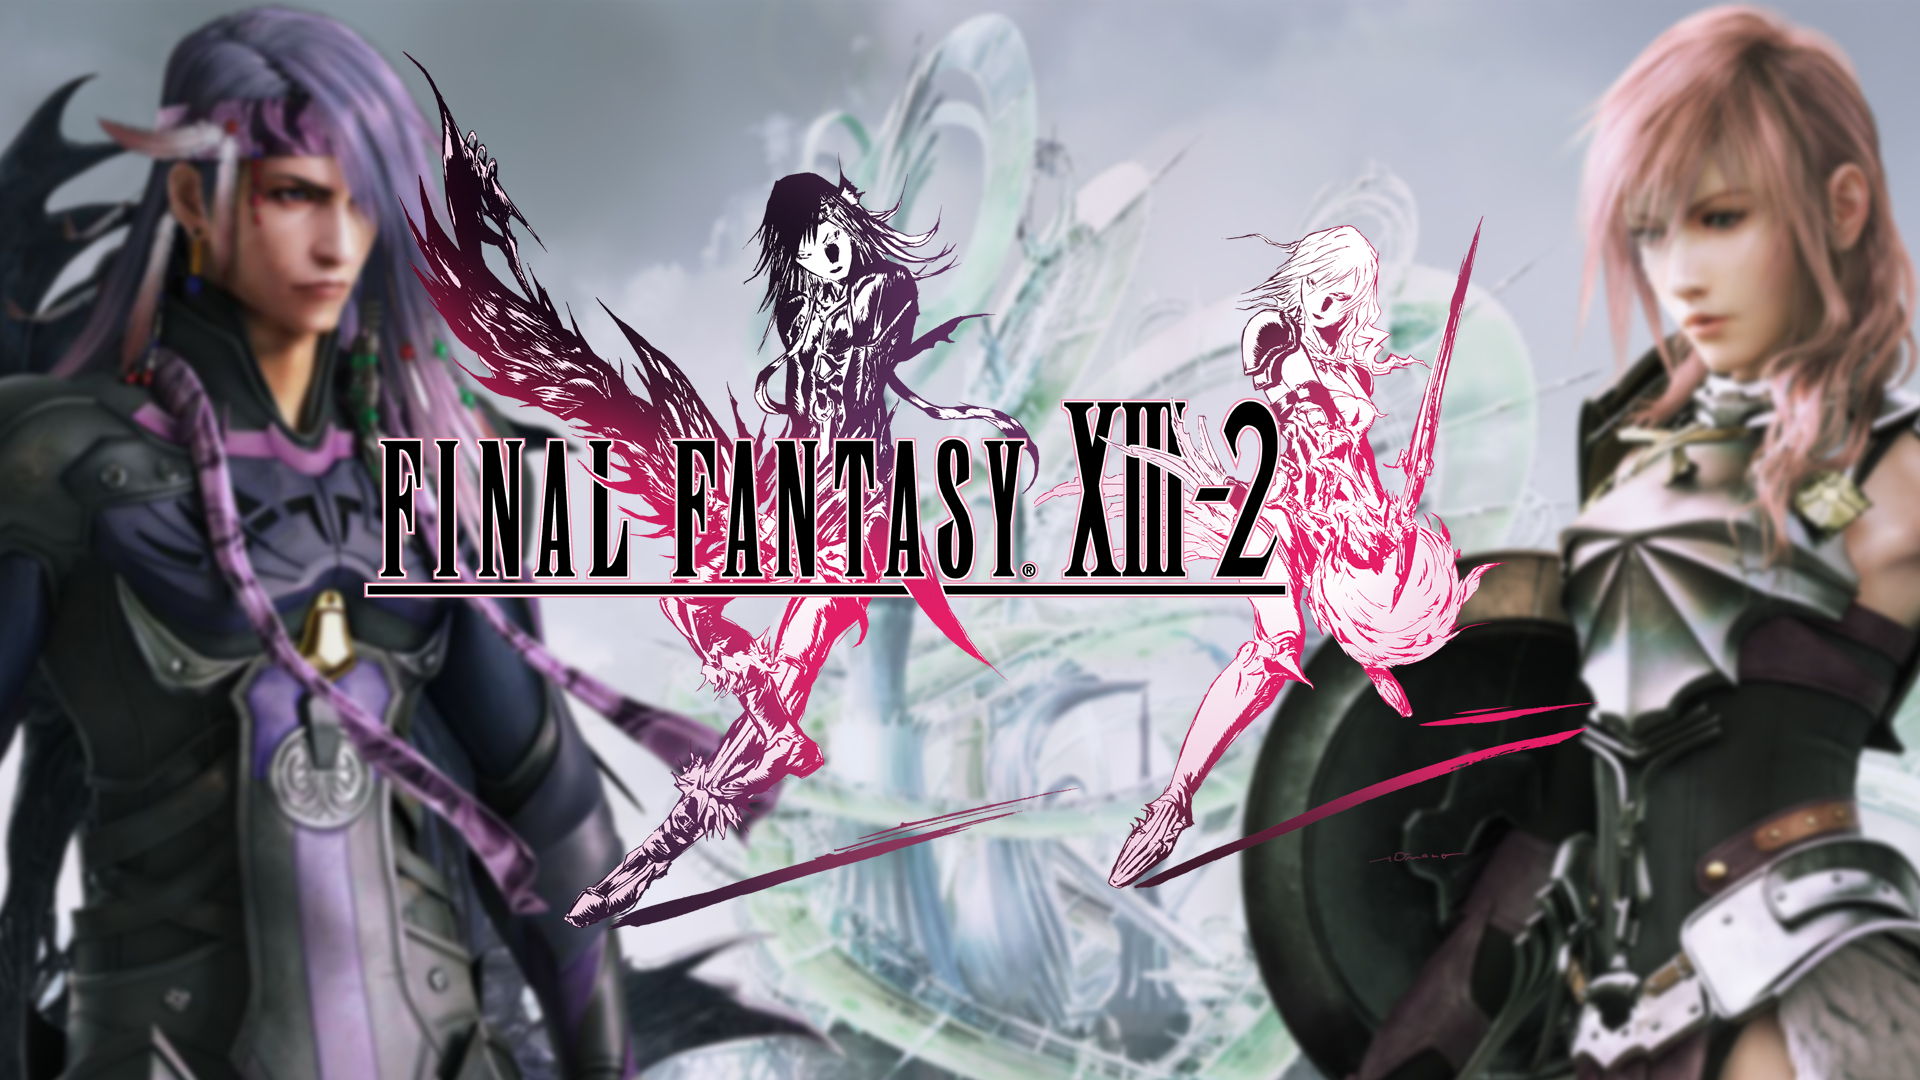 Final Fantasy Xiii 2 Wallpapers Video Game Hq Final Fantasy Xiii